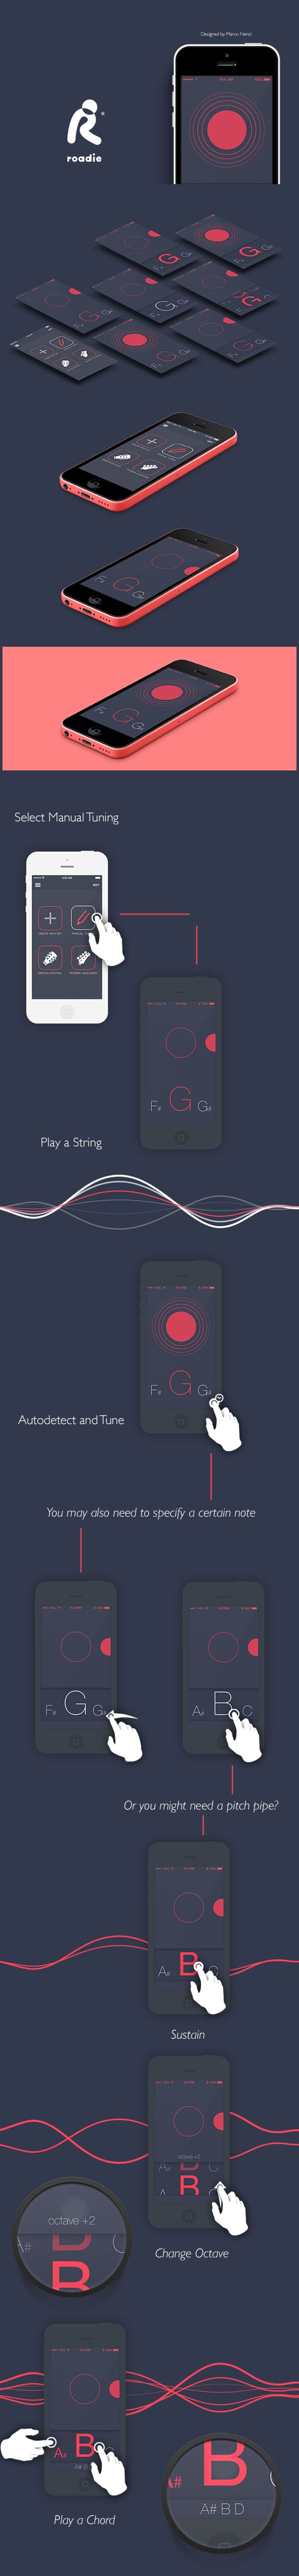 Roadie Chromatic Tuner on Behance